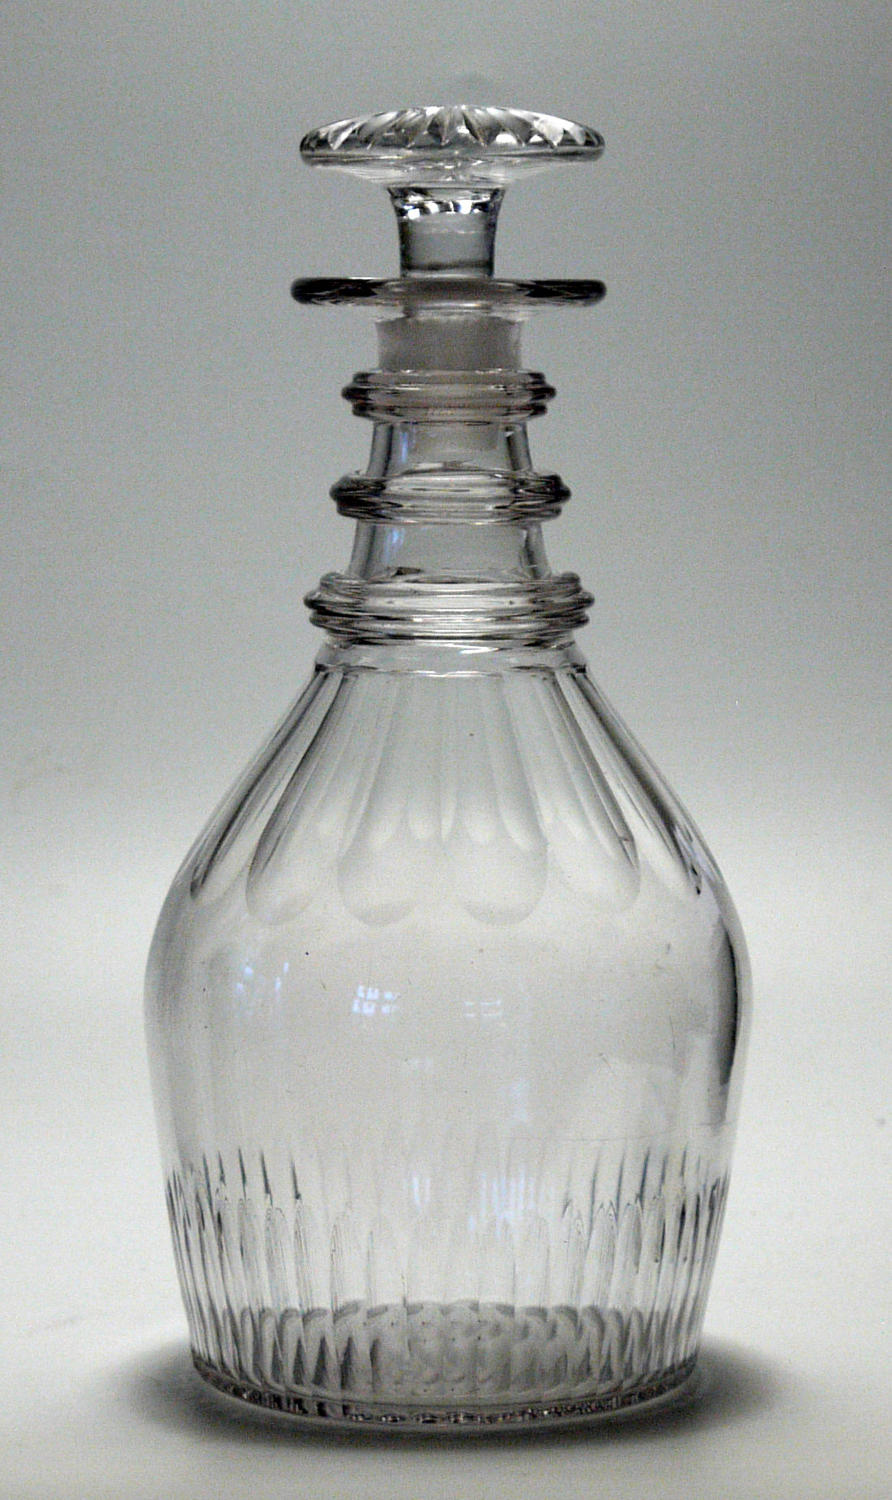 6576 A cut 'prussian'  decanter wit a mushroom stopper